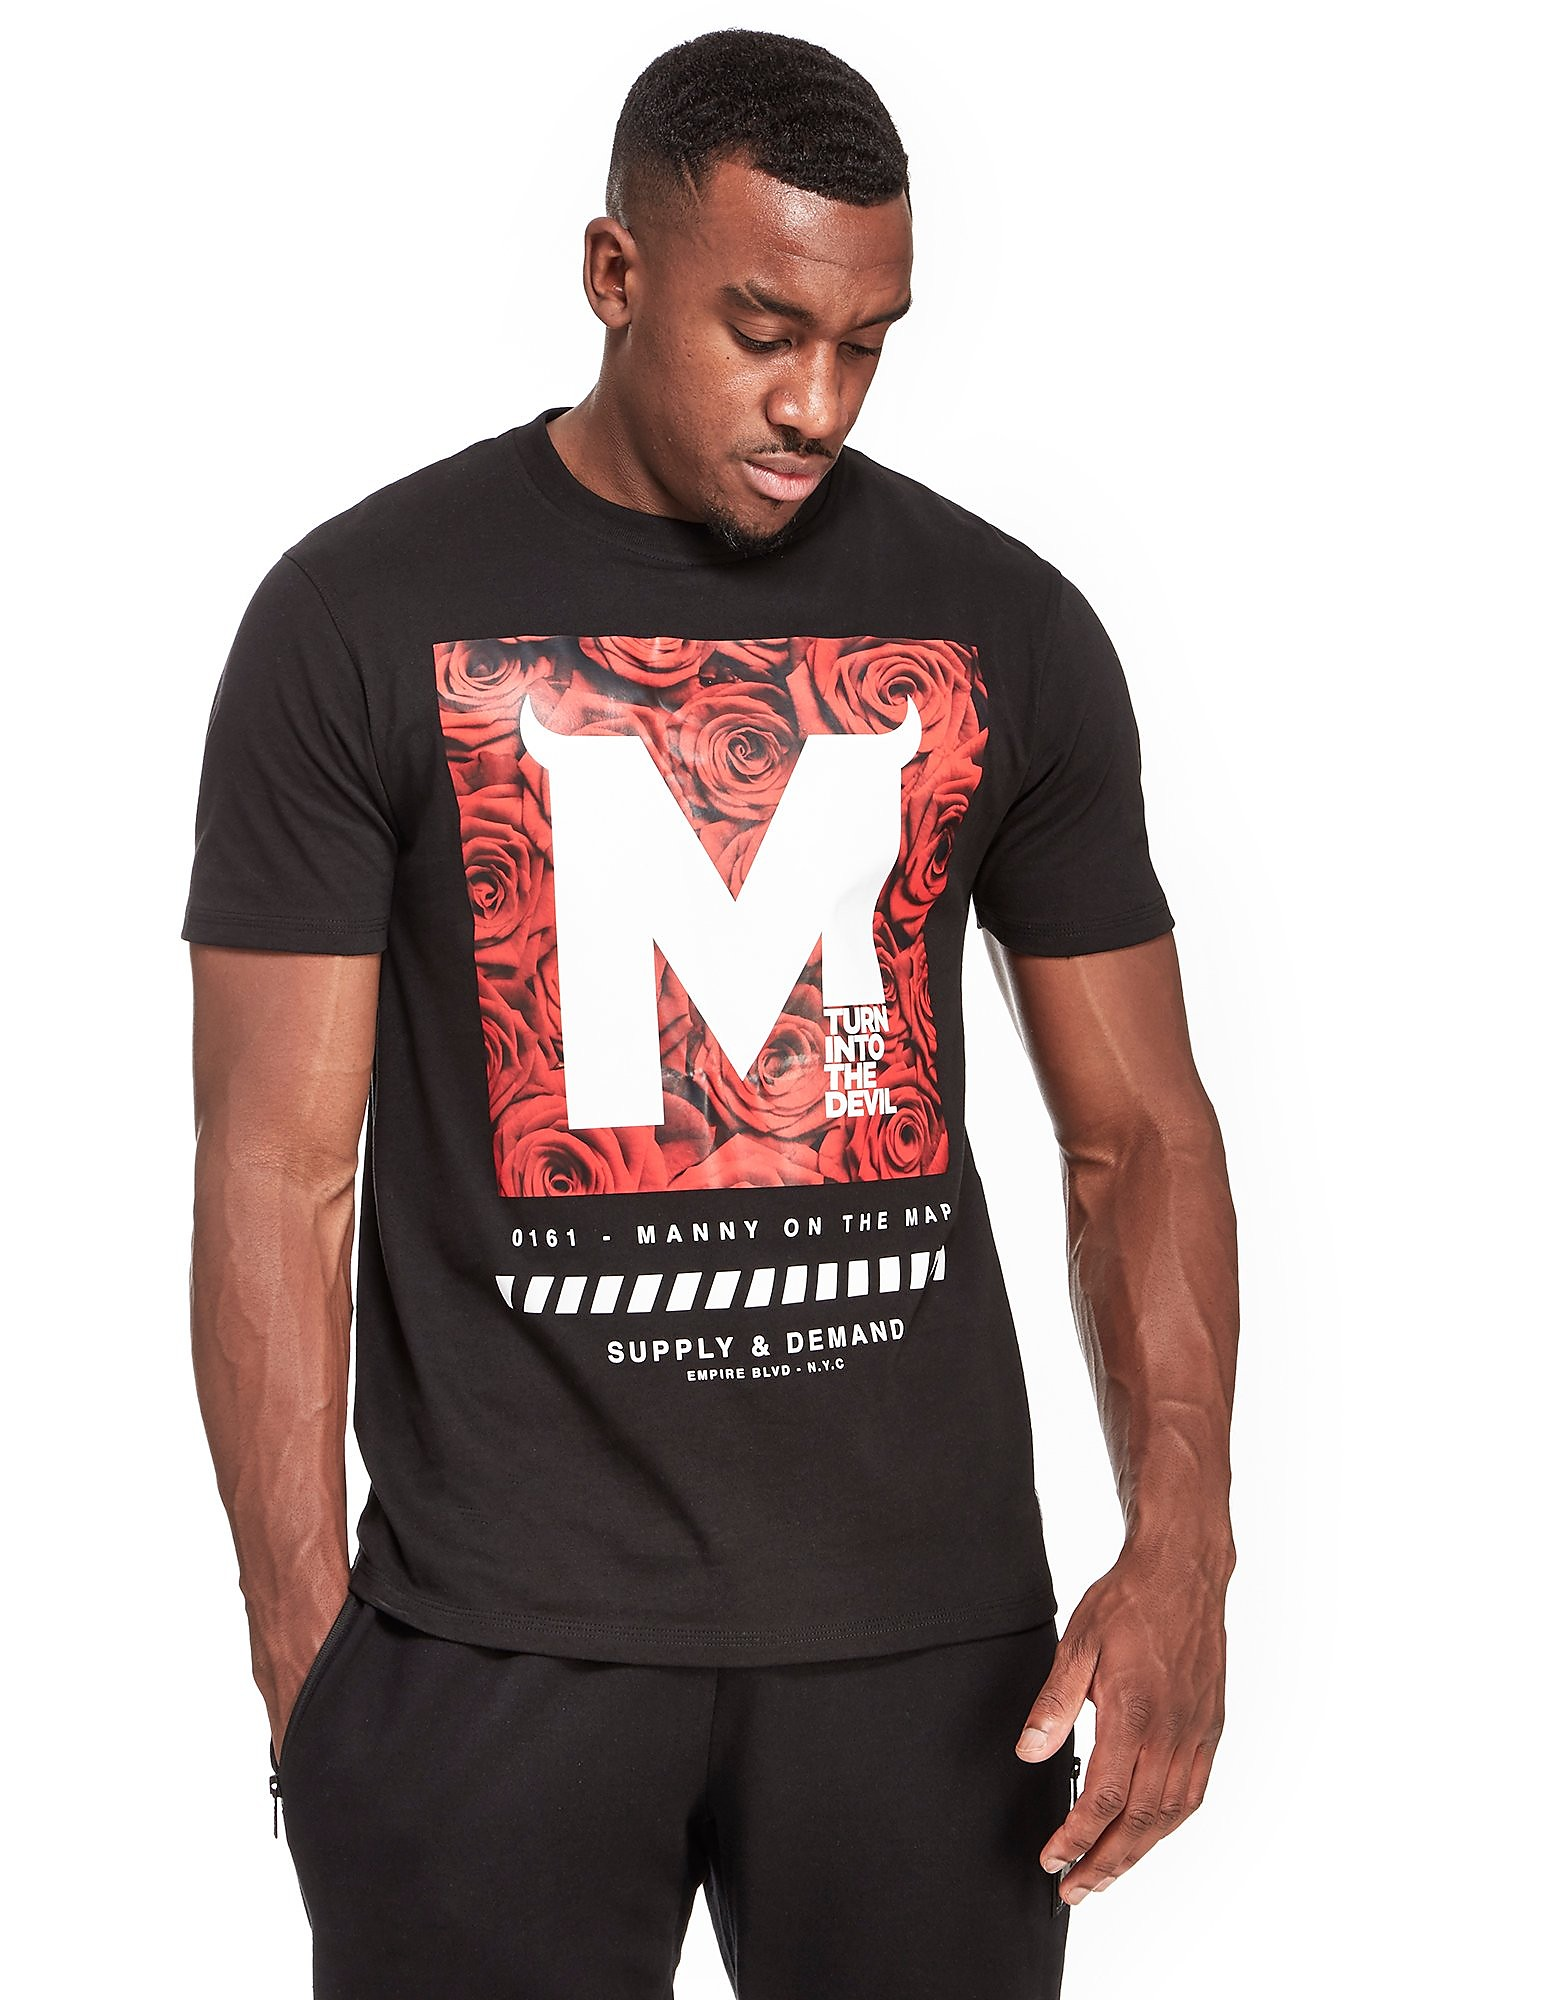 Supply & Demand x Bugzy Malone Rose Block T-Shirt PRE-ORDER